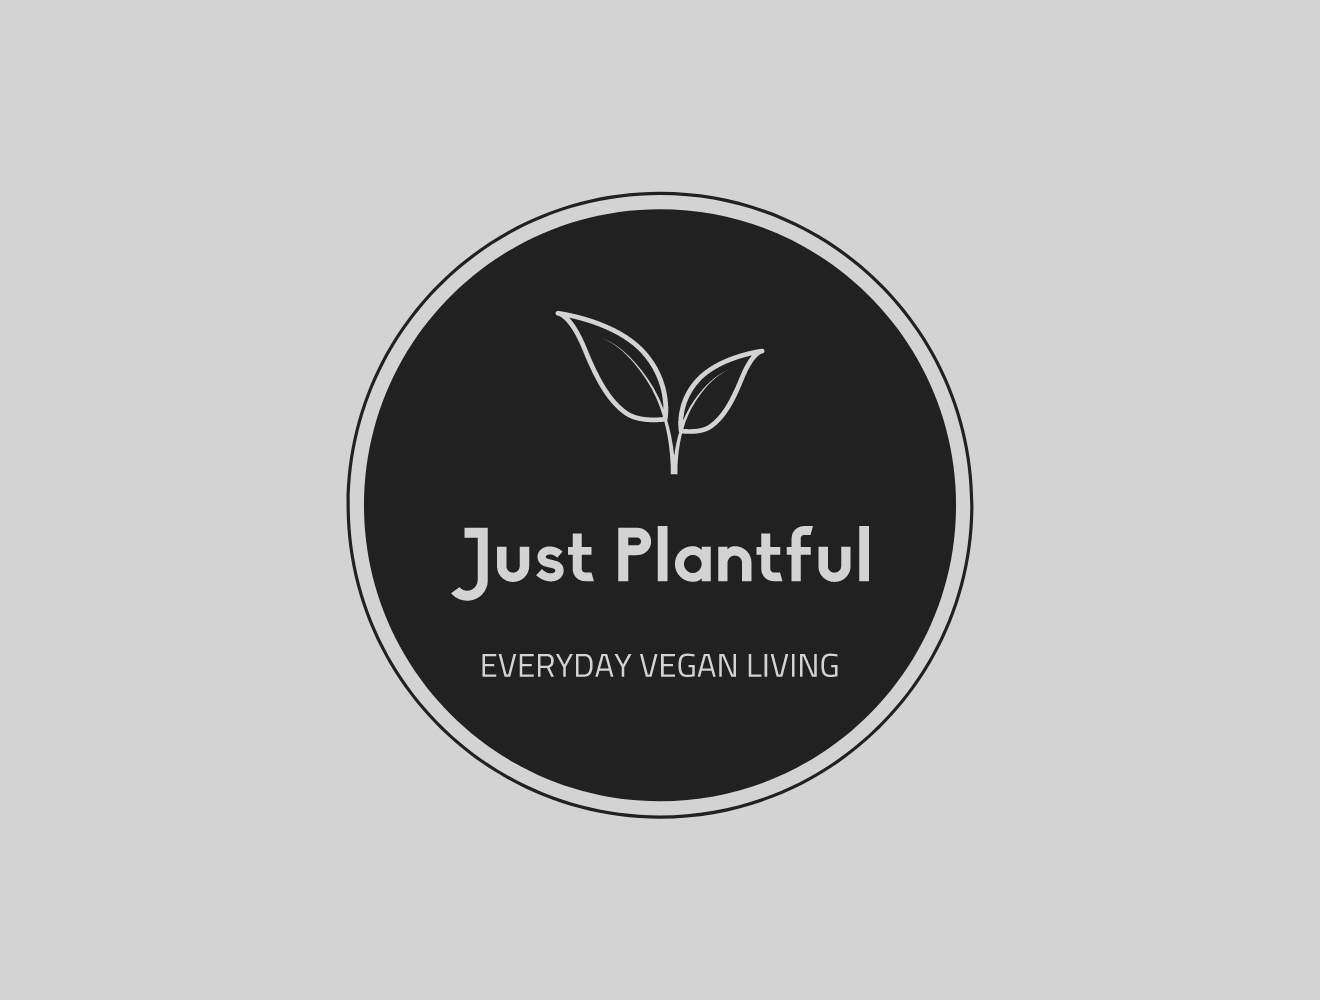 Just Plantful